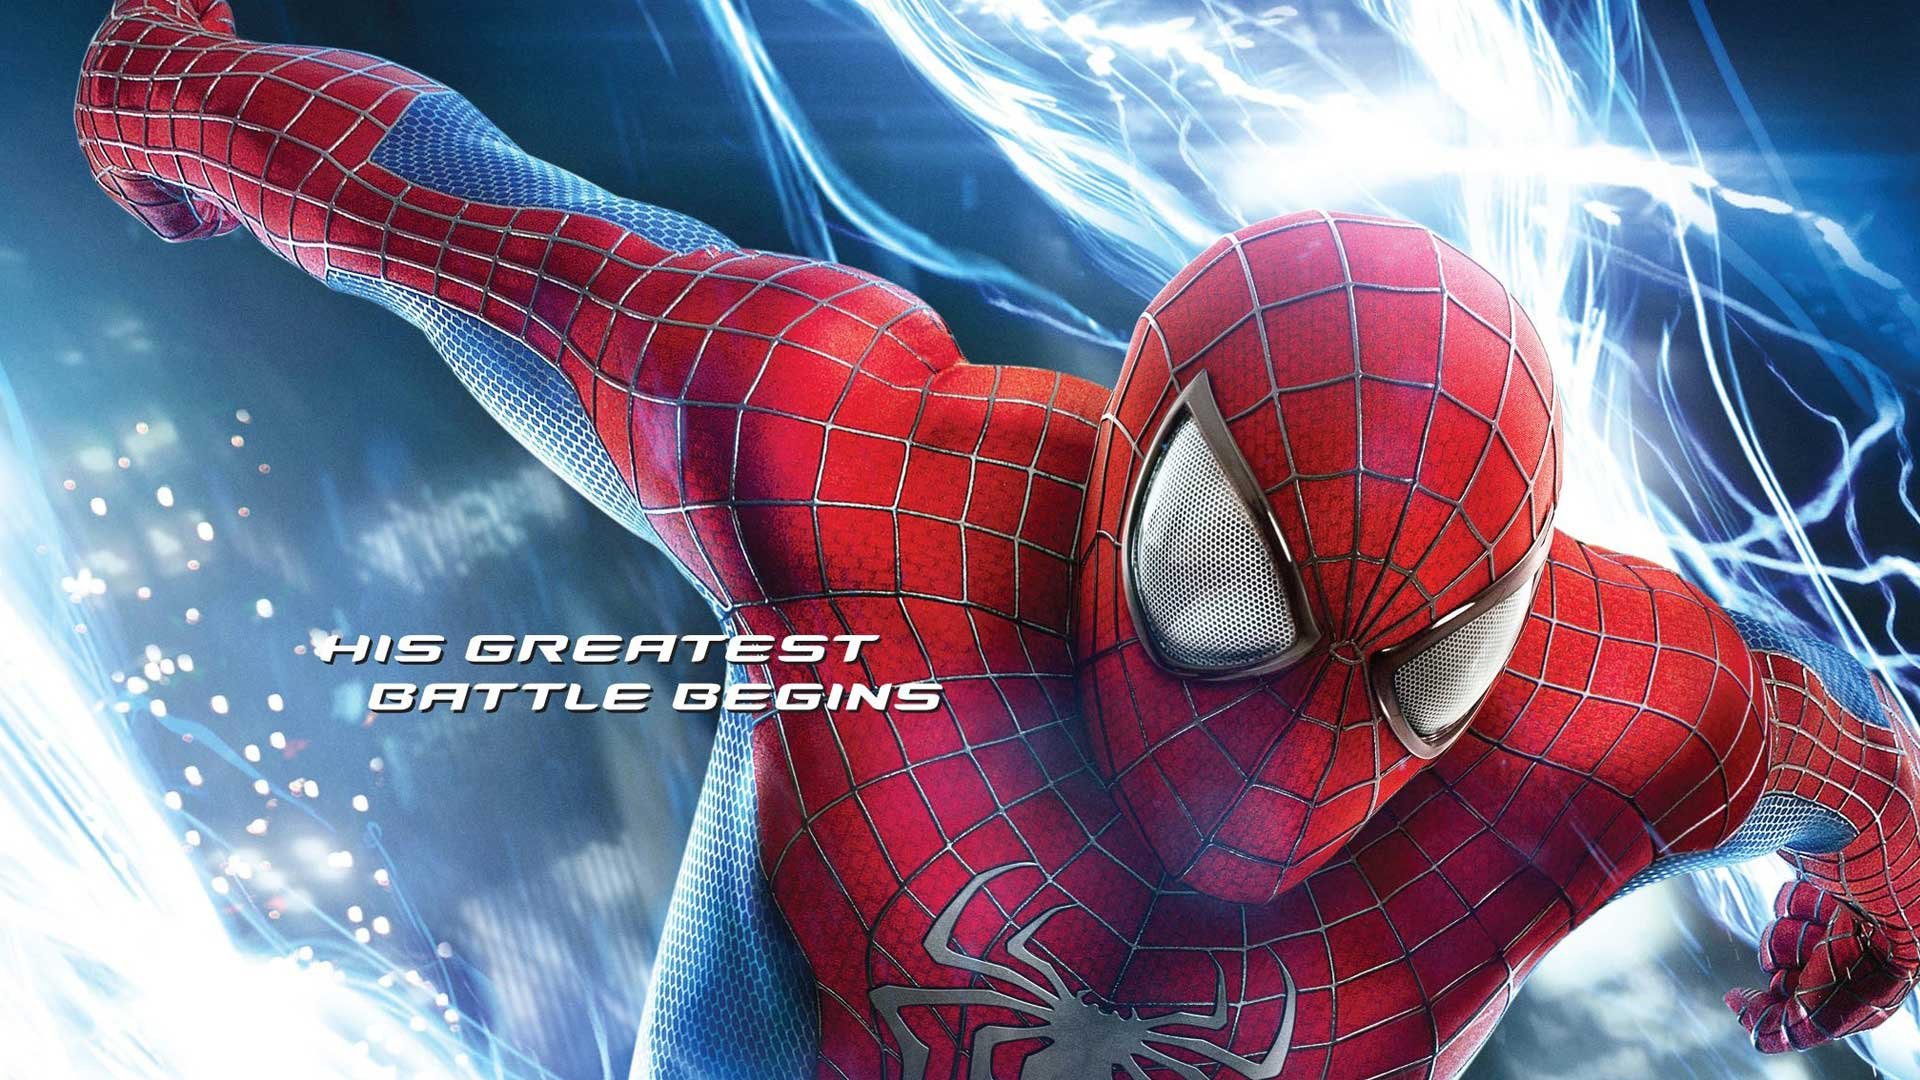 Finaler The Amazing Spider-Man 2 Trailer